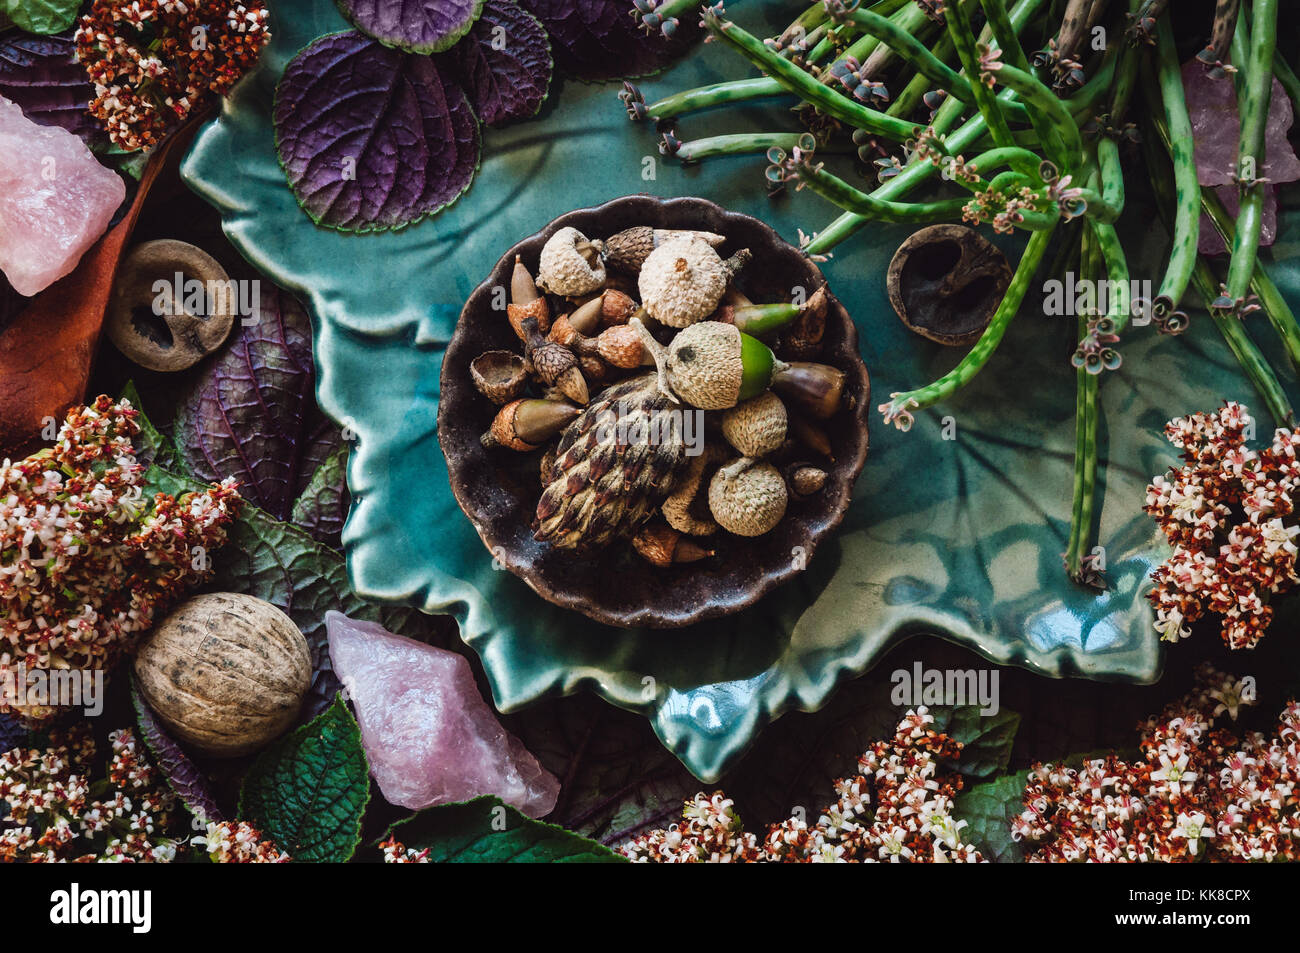 A Collection of Specimens, Flowers and Rose Quartz Crystals. - Stock Image